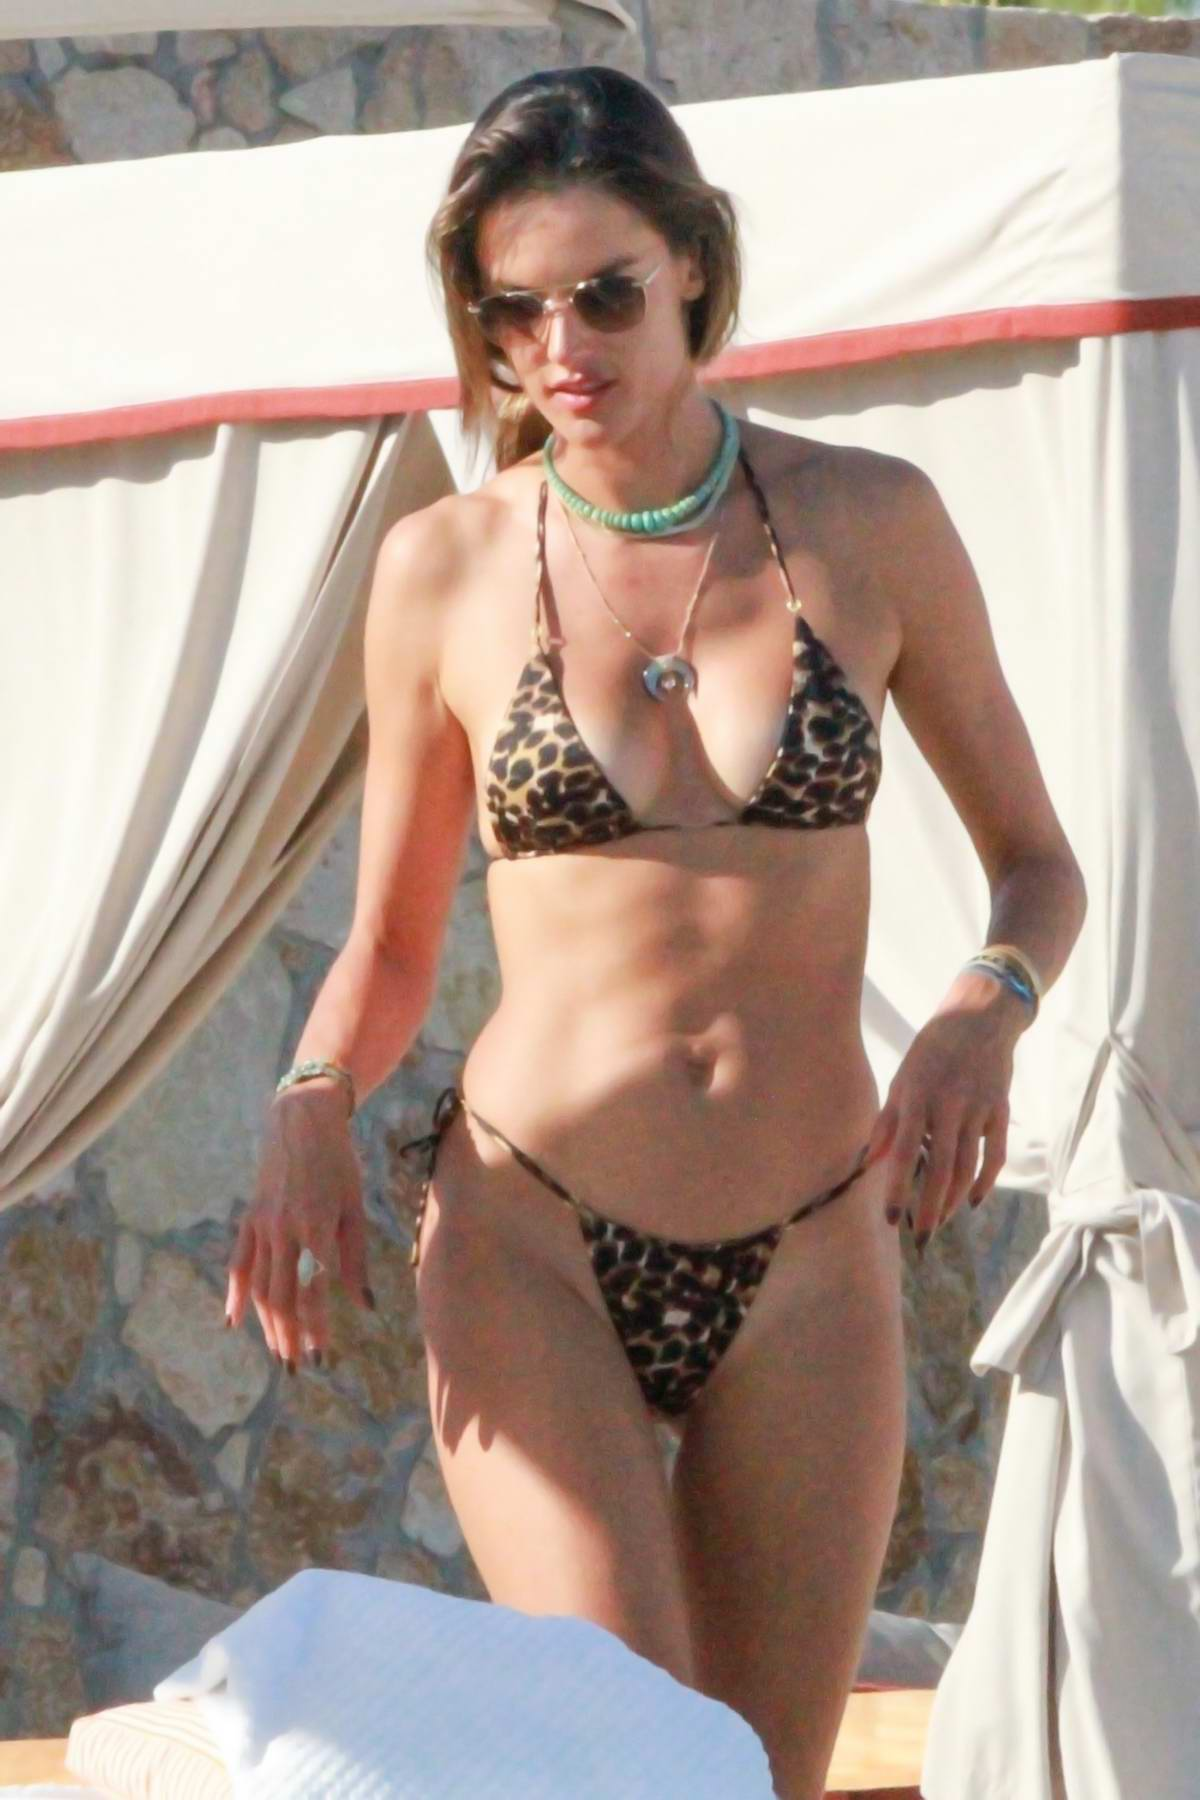 Alessandra Ambrosio stuns in a leopard print bikini during a getaway vacation in Cabo San Lucas, Mexico